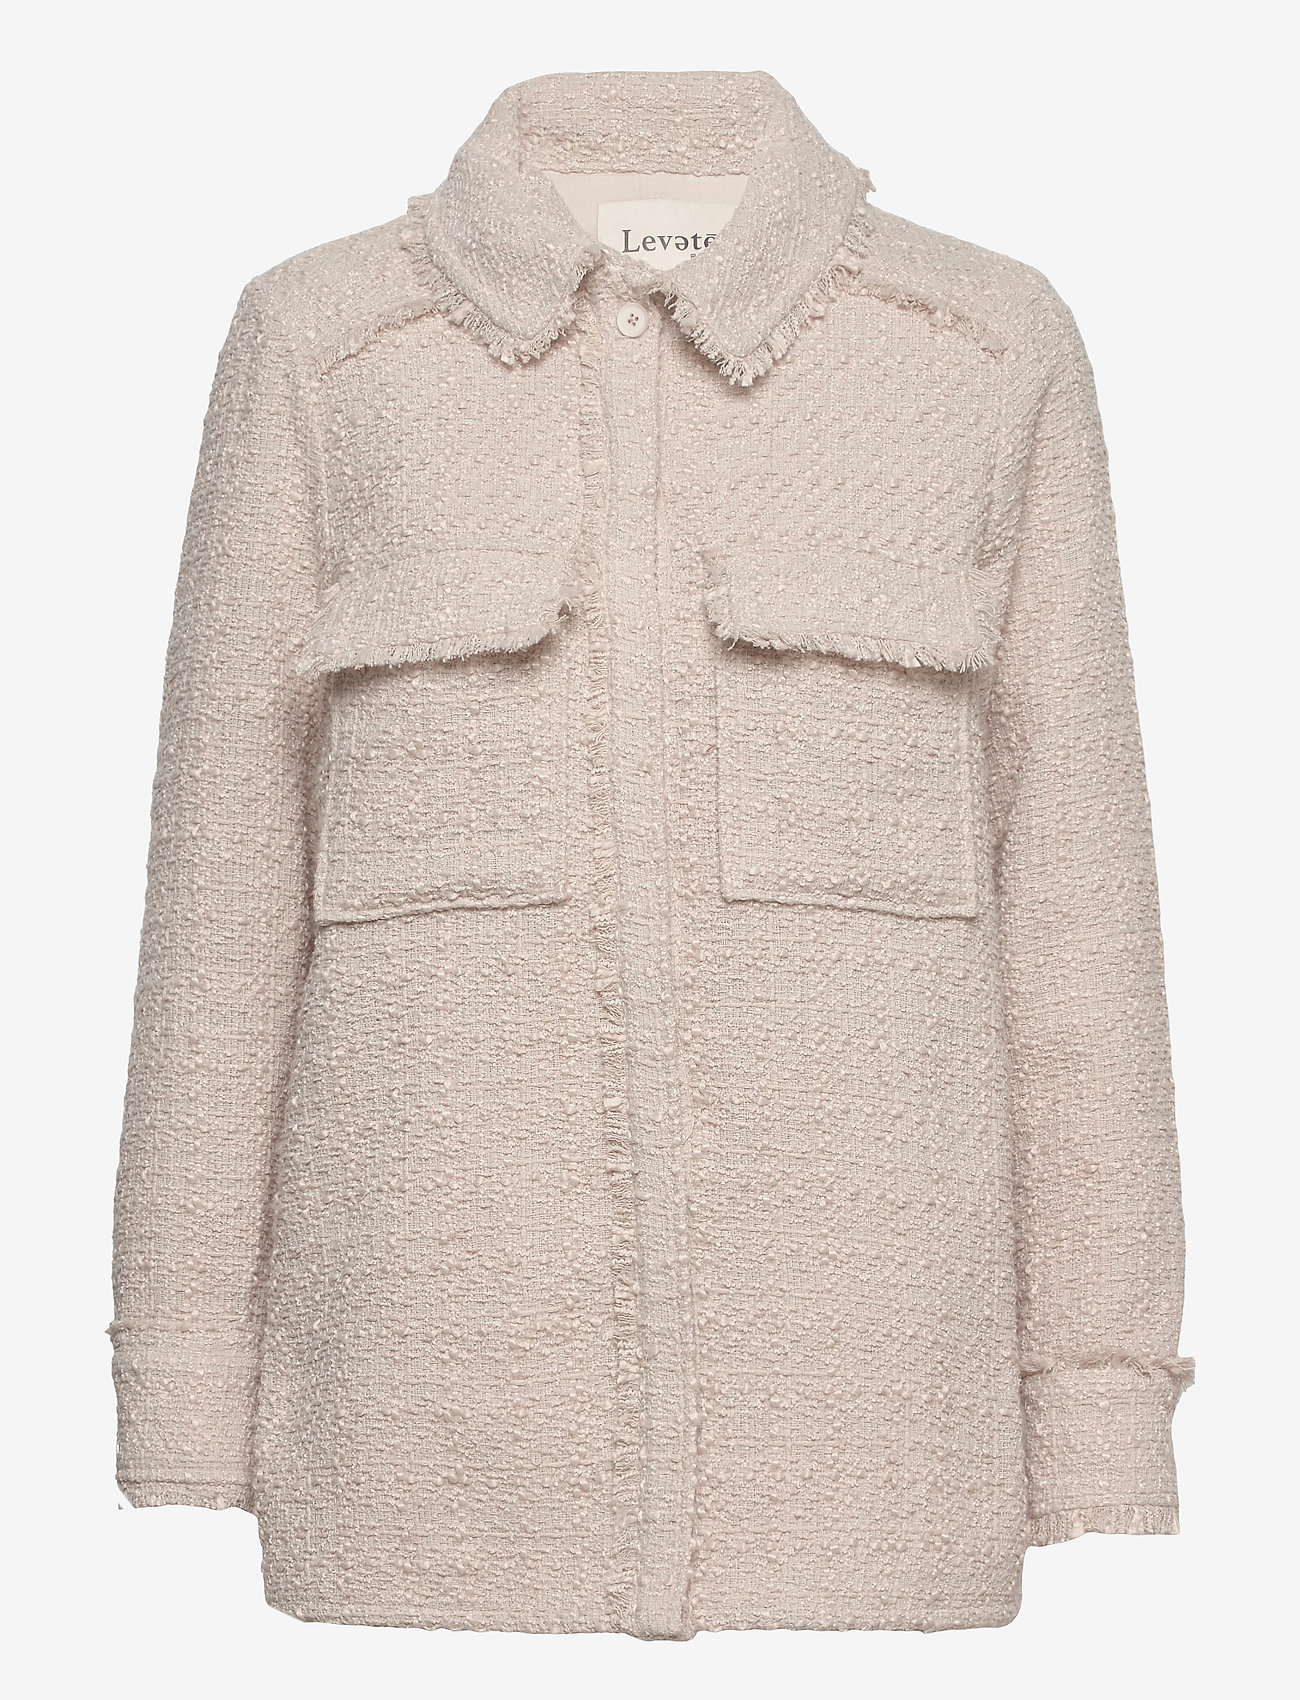 Levete Room - LR-GELLY - wool jackets - l901 - chateau gray - 0